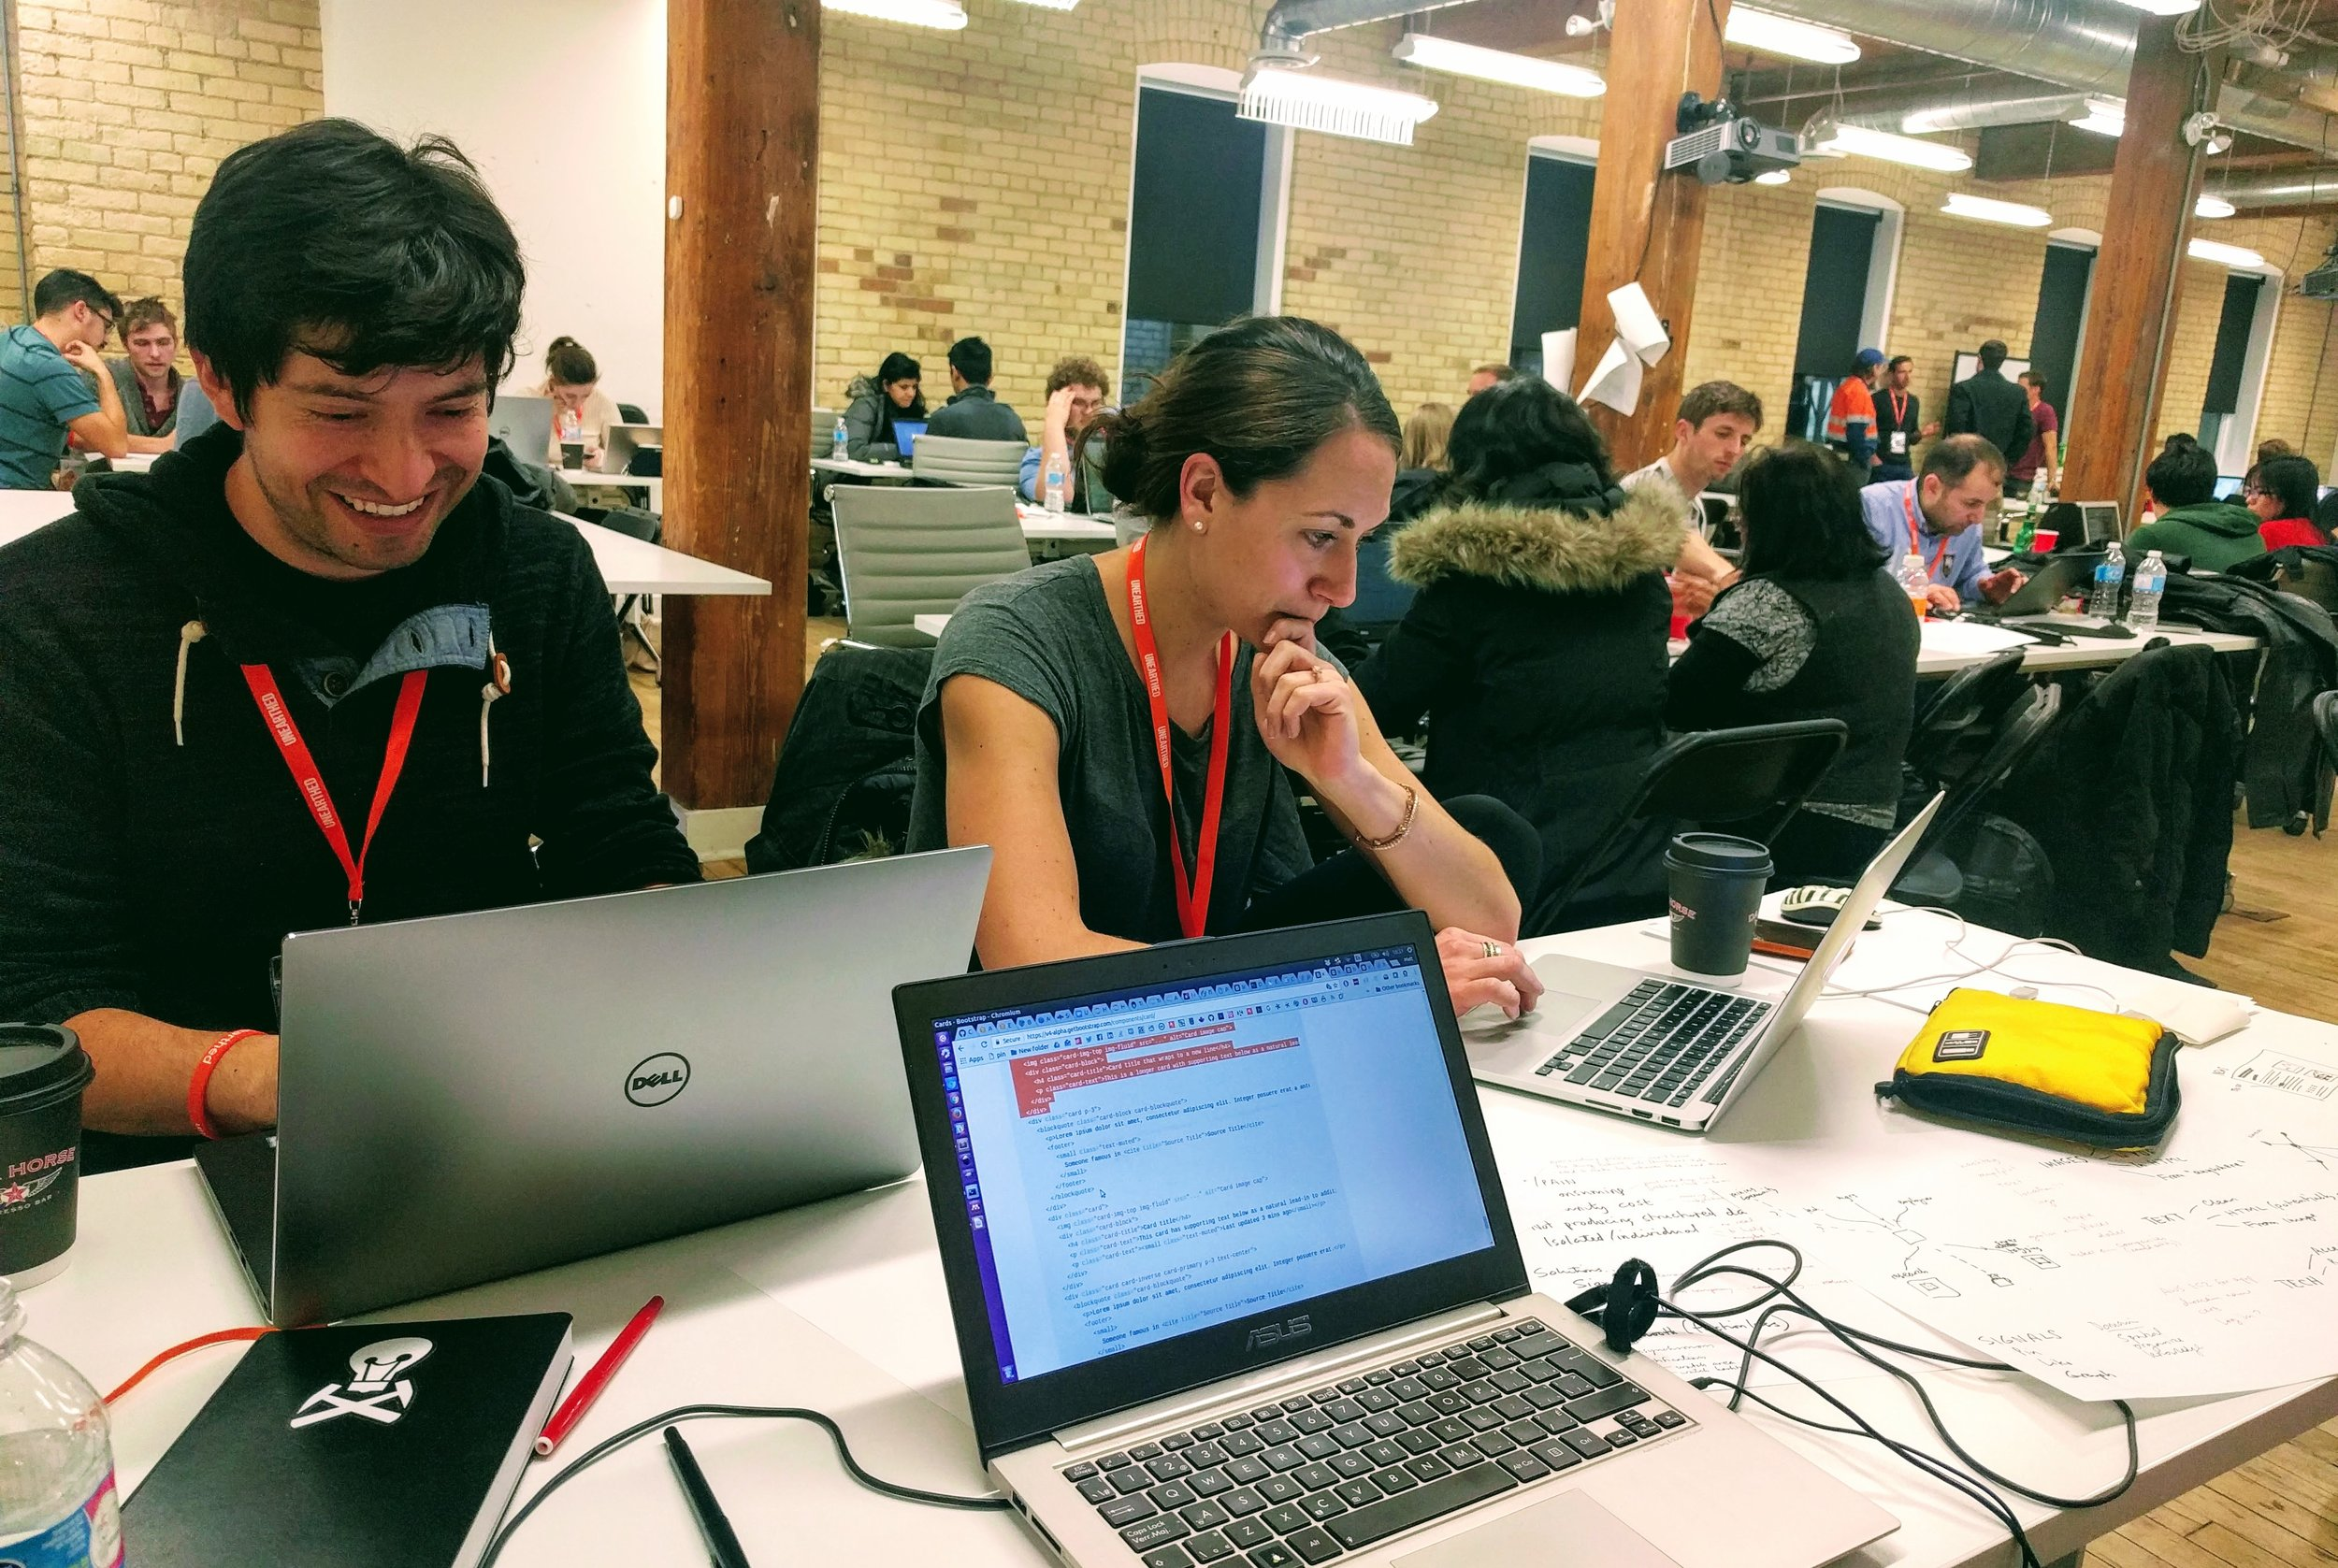 Team Auger Effect: Diego and Anneya hacking away on Day 2.